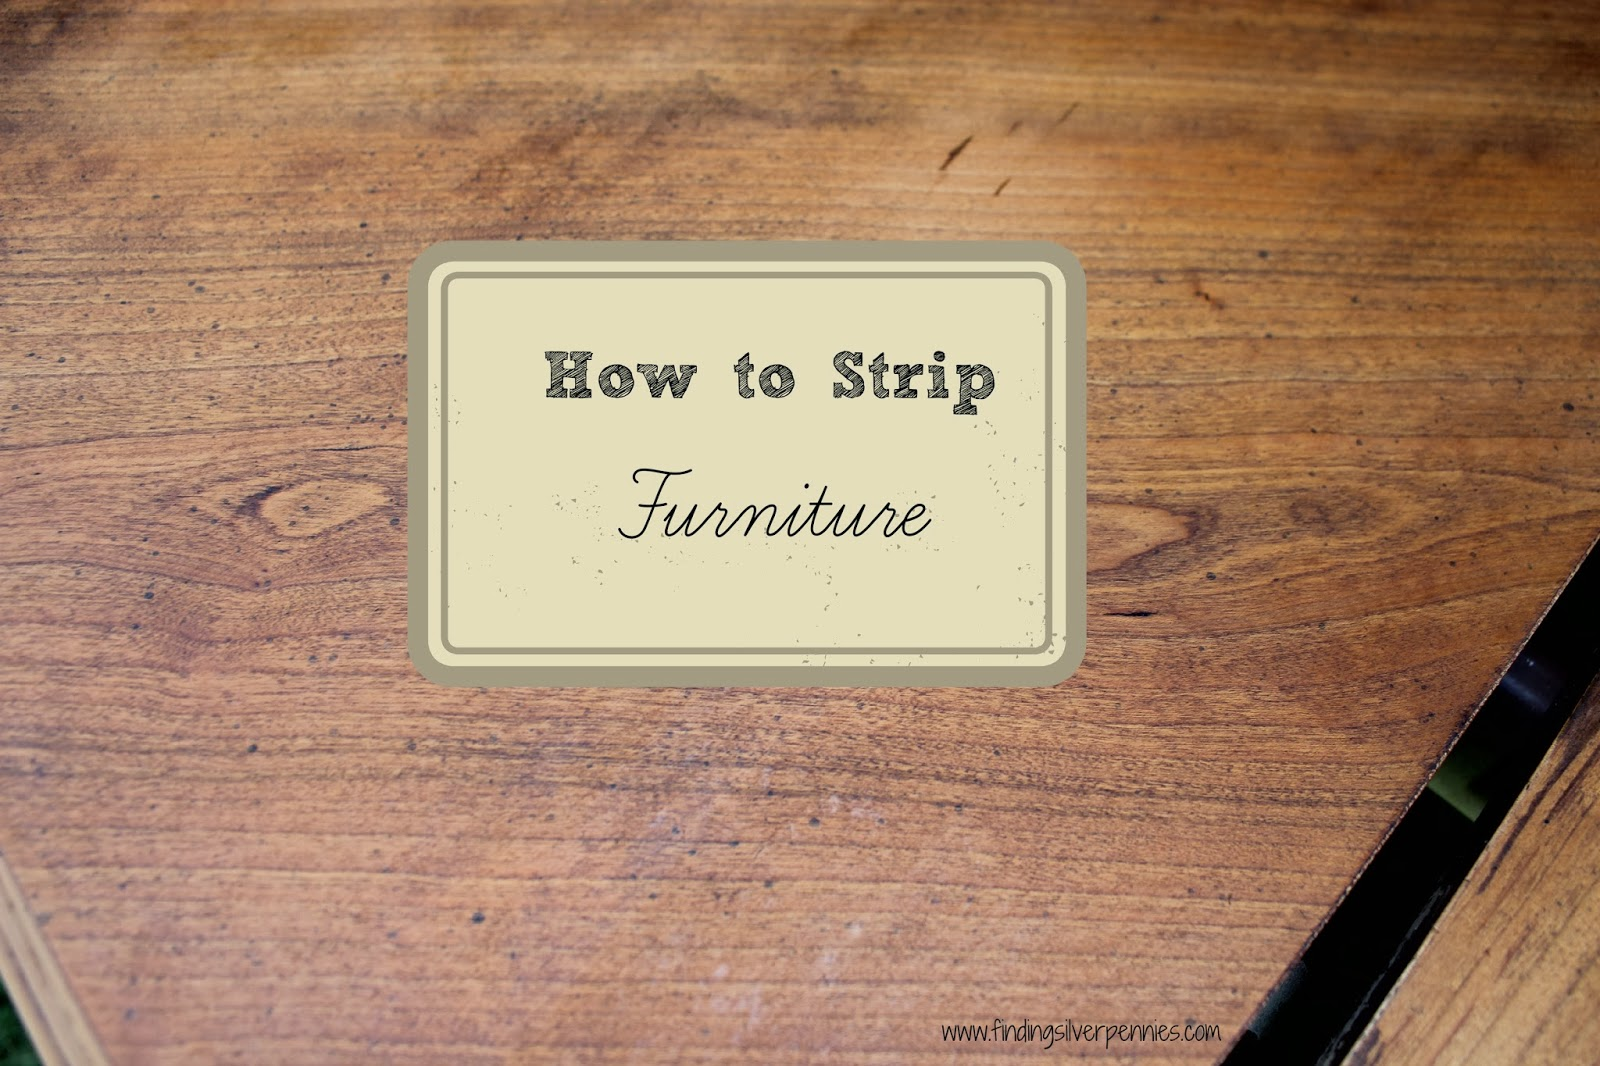 Staining Furniture 101 - Finding Silver Pennies